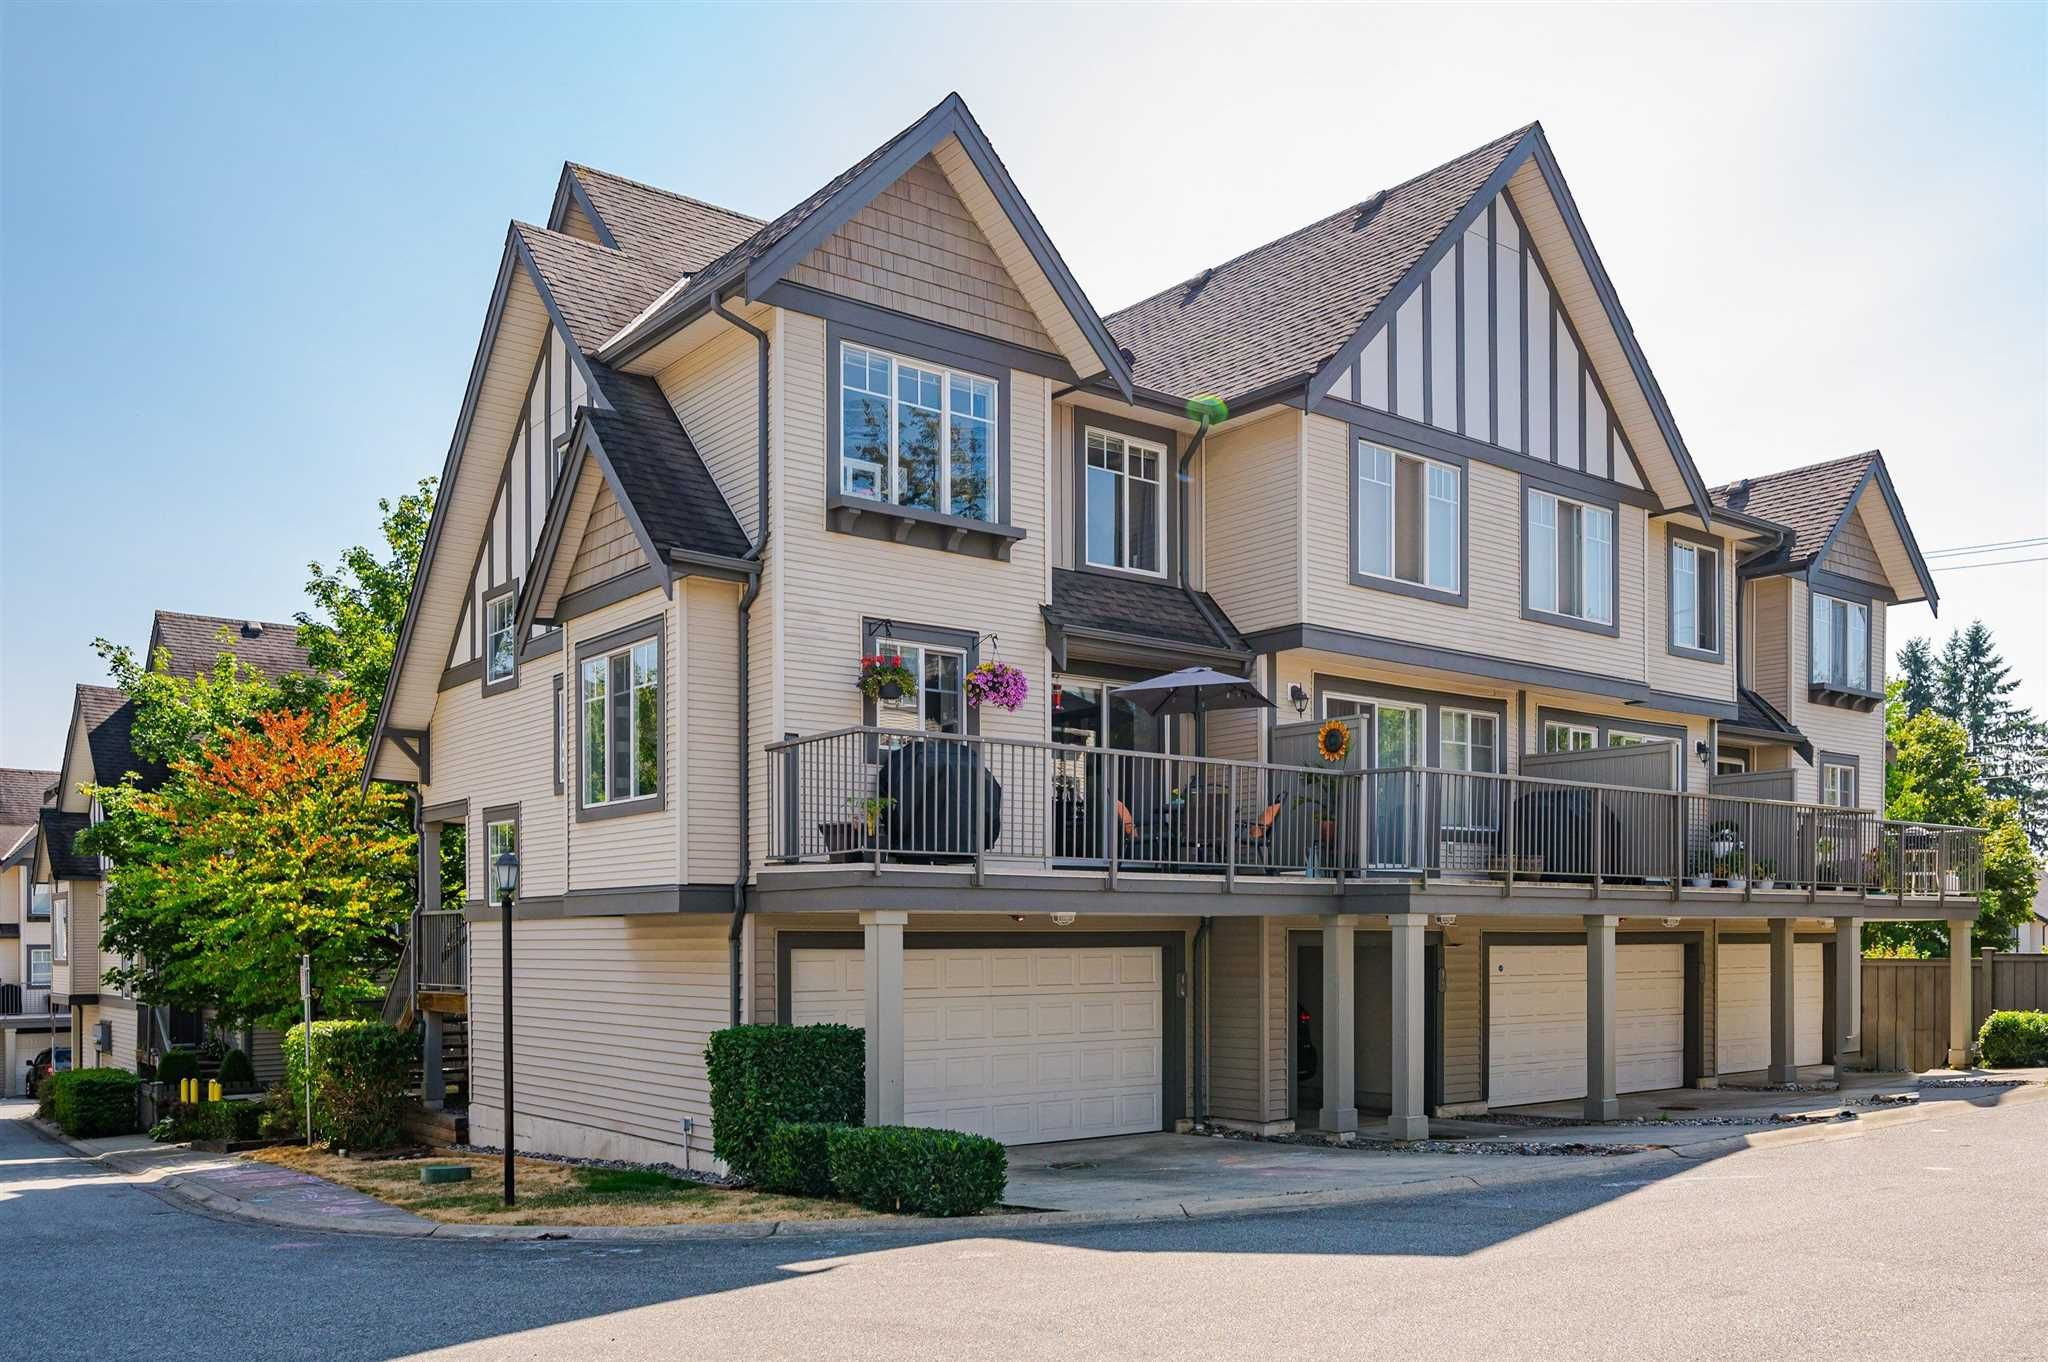 """Main Photo: 14 20038 70 Avenue in Langley: Willoughby Heights Townhouse for sale in """"Daybreak"""" : MLS®# R2605281"""